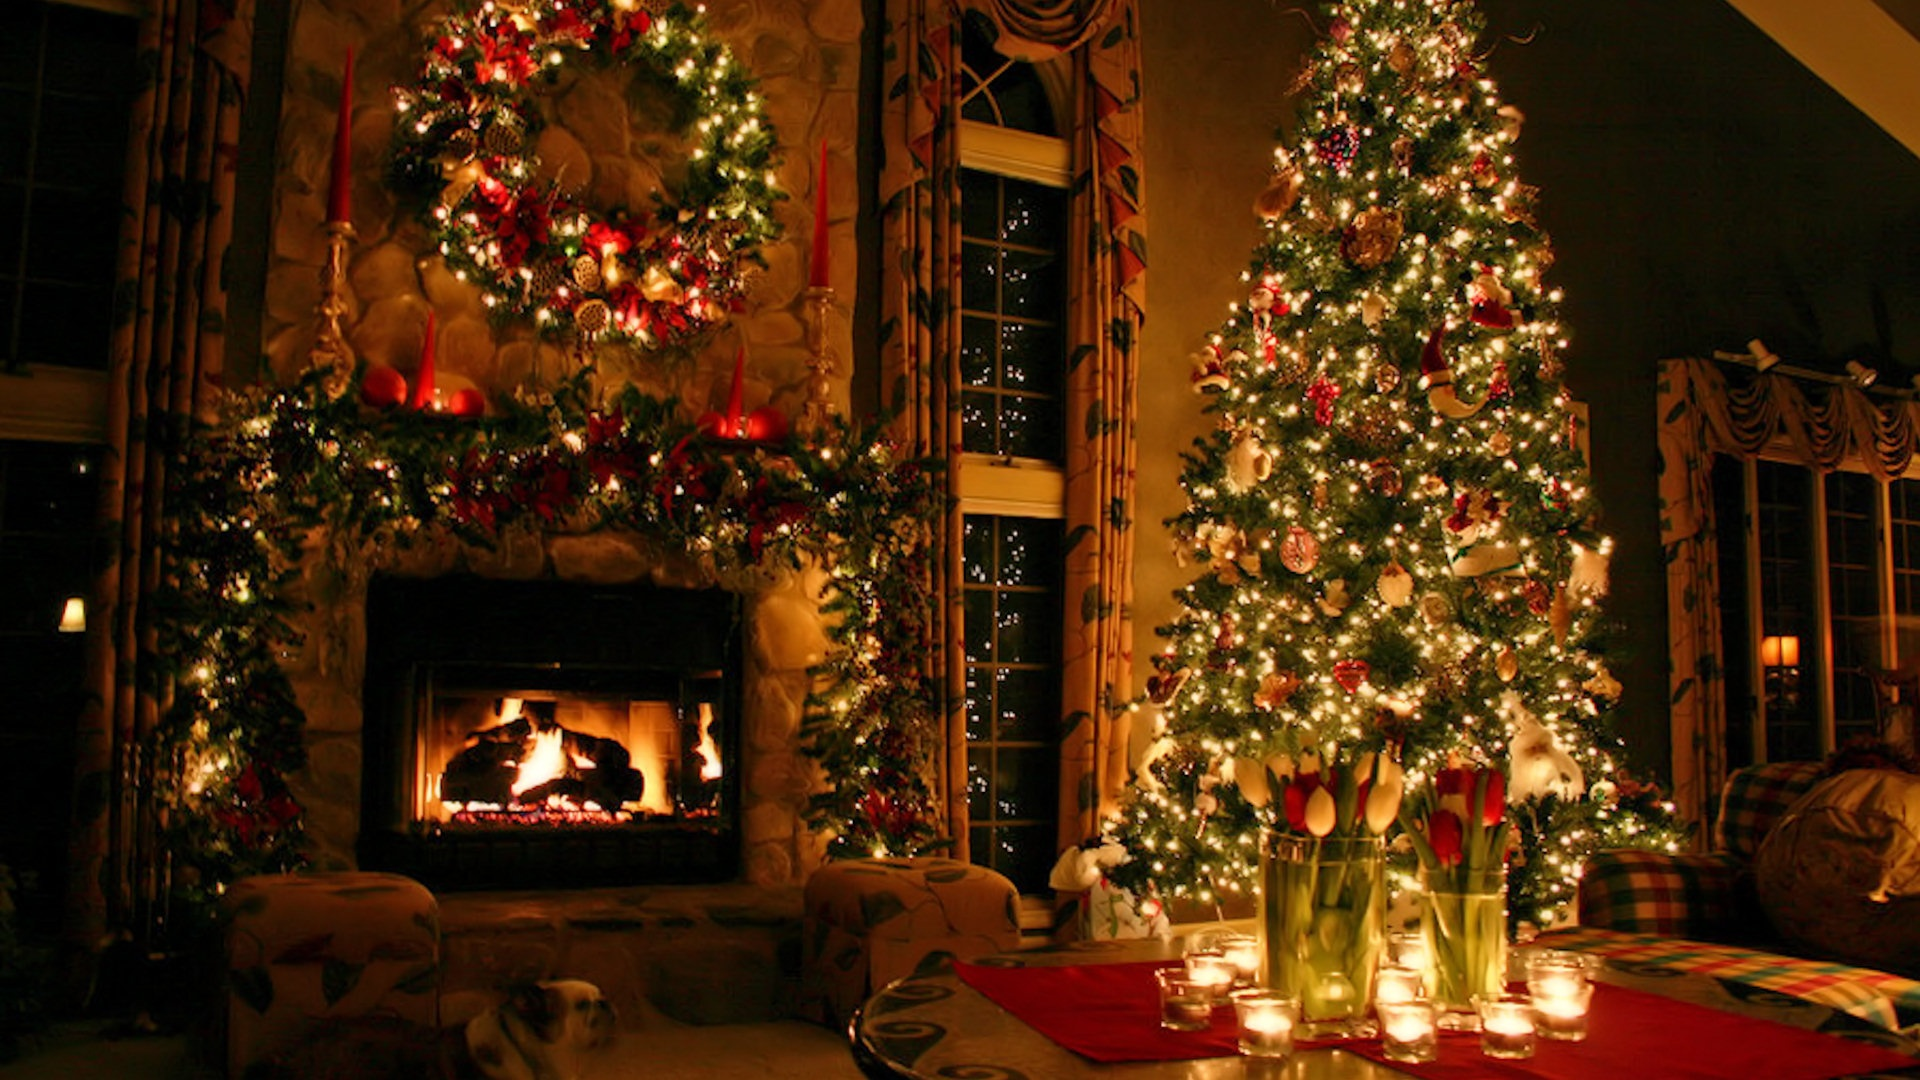 Christmas background pictures for desktop   SF Wallpaper 1920x1080